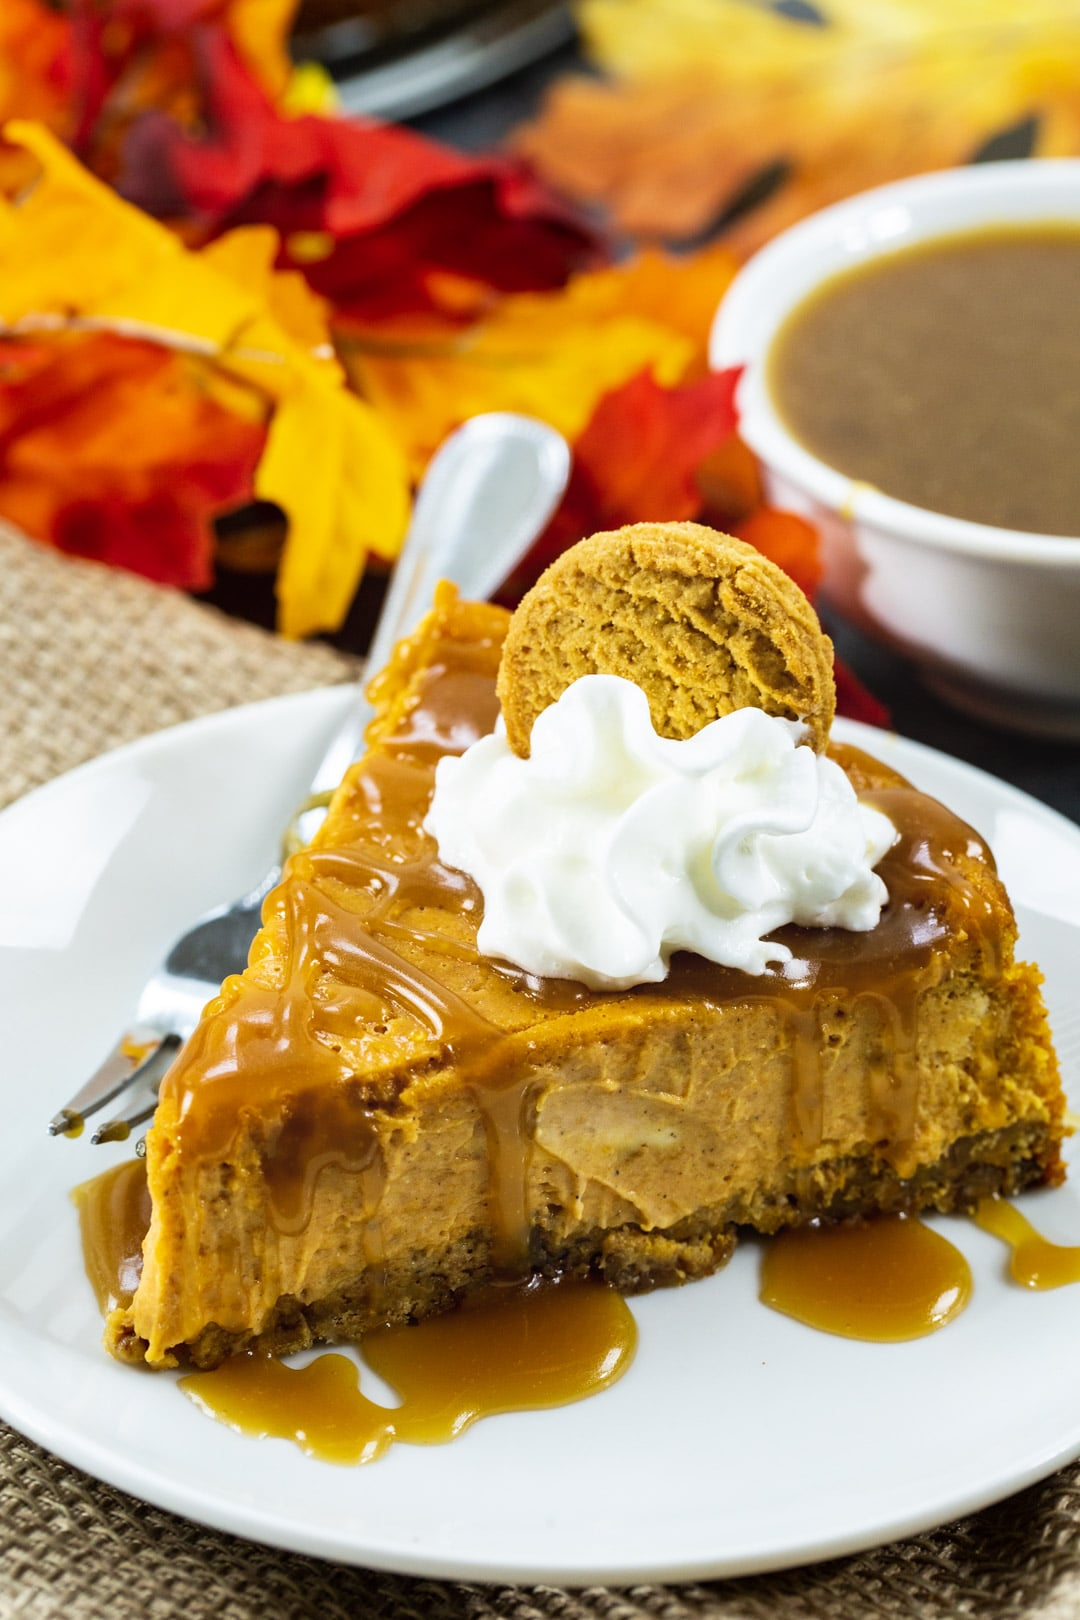 Slice of Pumpkin Cheesecake on a plate.